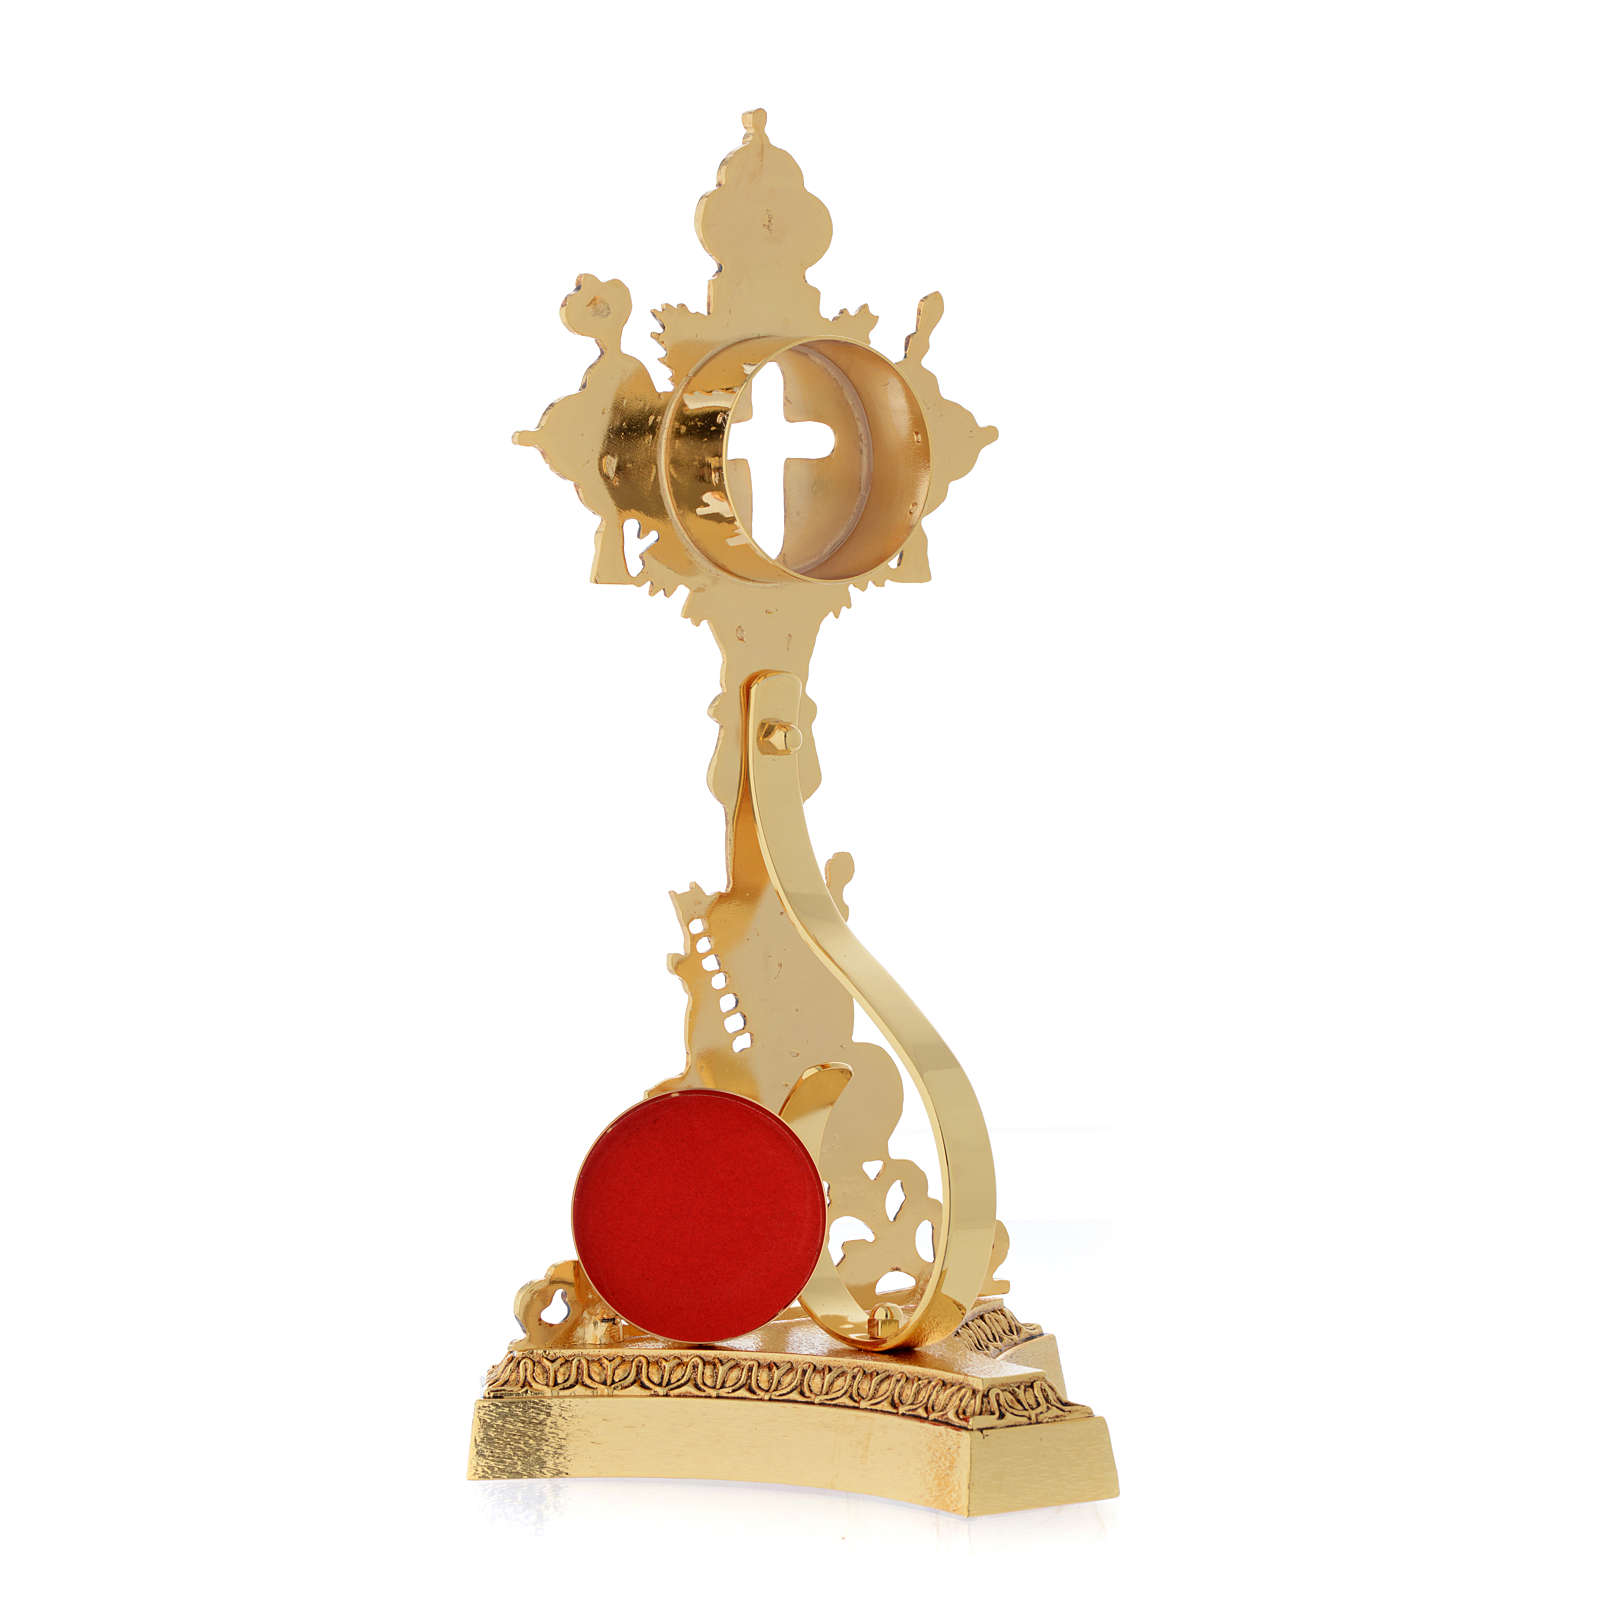 Reliquary of Saint Cross gold-plated brass 4